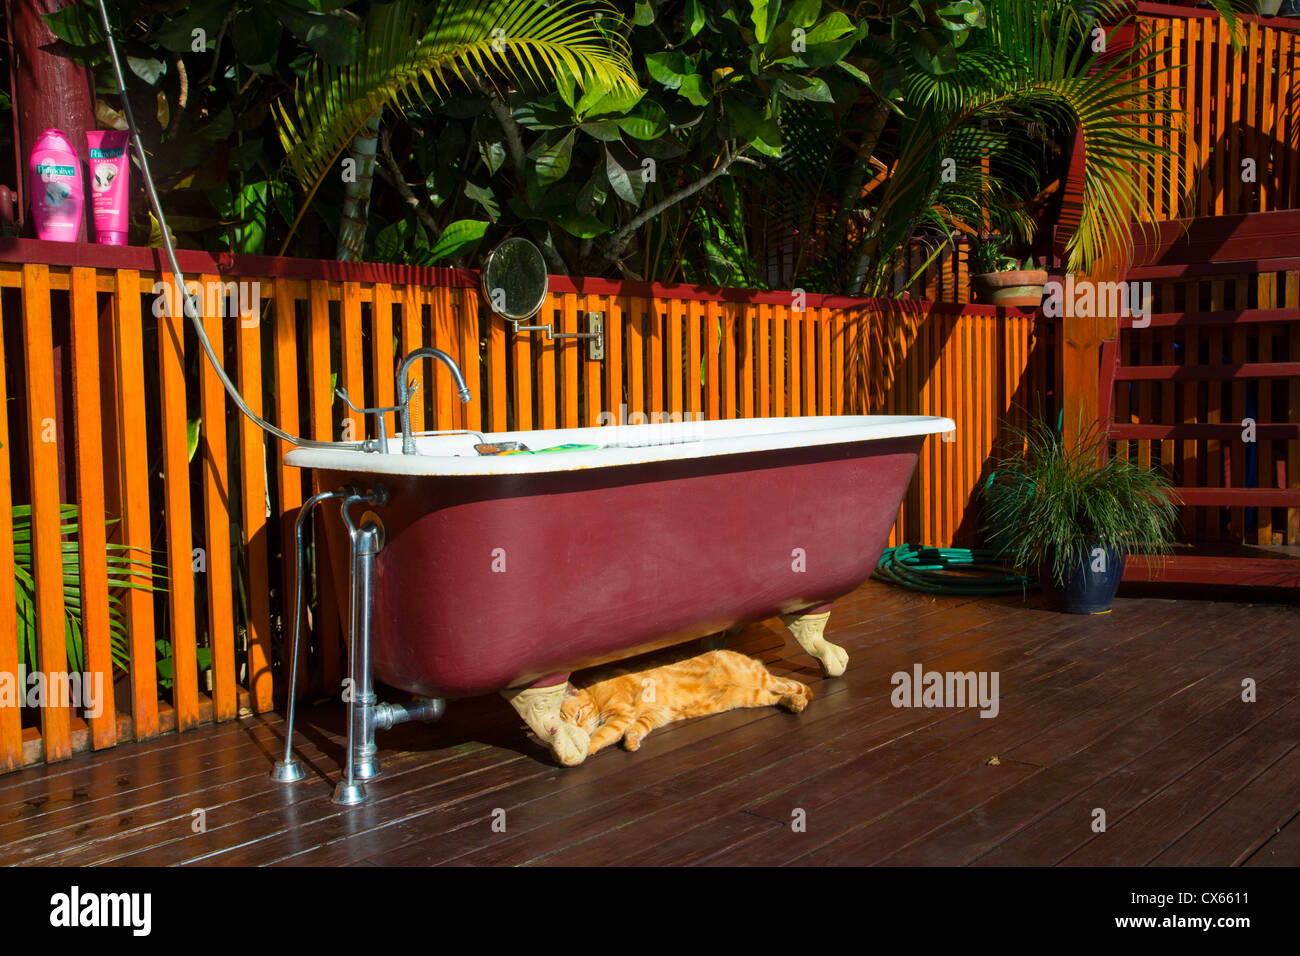 Claw footed bathtub, Fiji - Stock Image